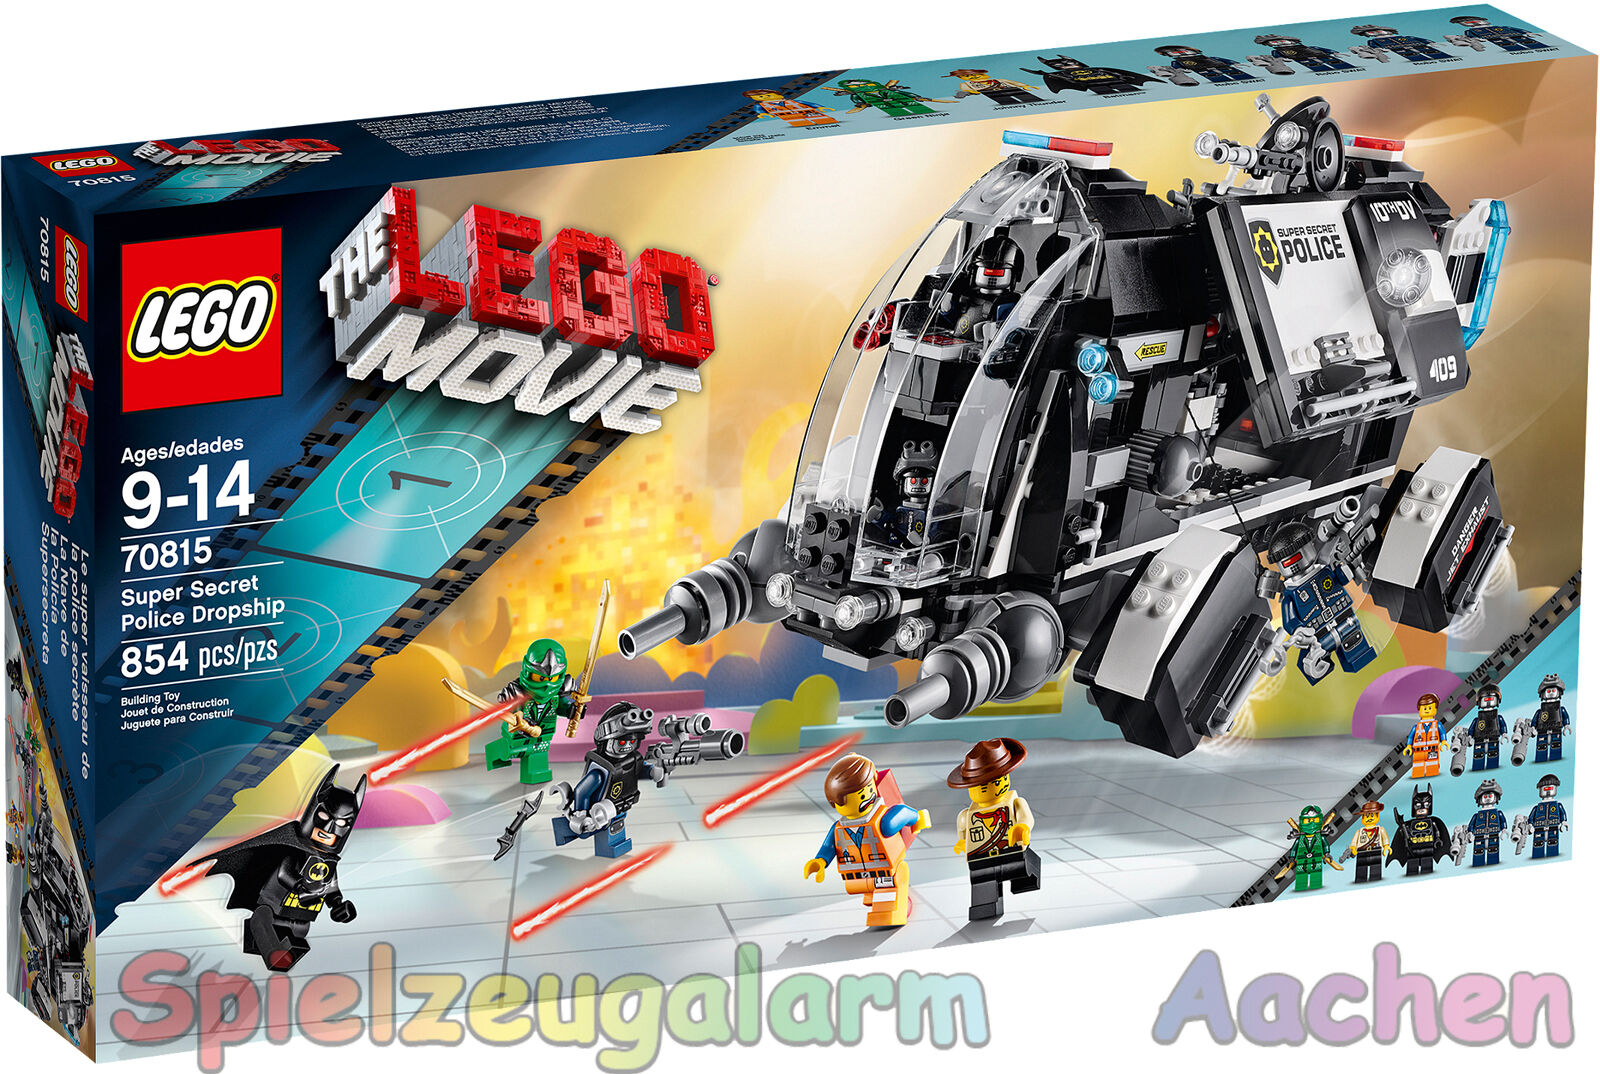 LEGO THE MOVIE 70801 70803 70804 70805 70806 70807 70808 70808 70808 70809 70811 70812 70813  | Spezielle Funktion